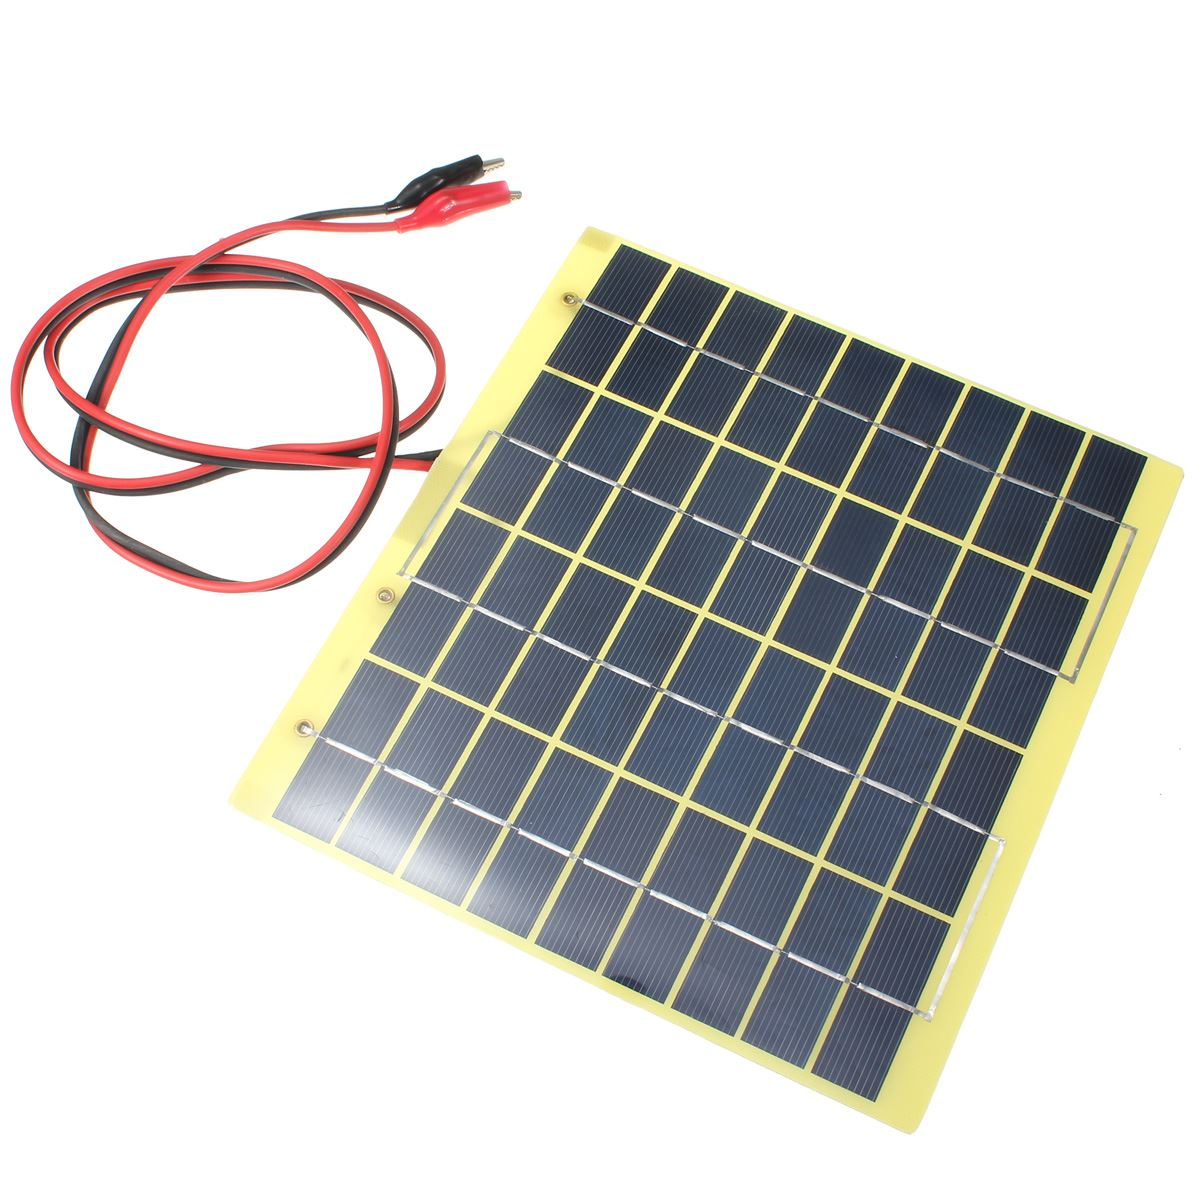 LEORY Hot Sale 18V 5W Polycrystalline Silicon Solar Cell Solar Panel+Crocodile Clip Diy Solar System for Battery Charger